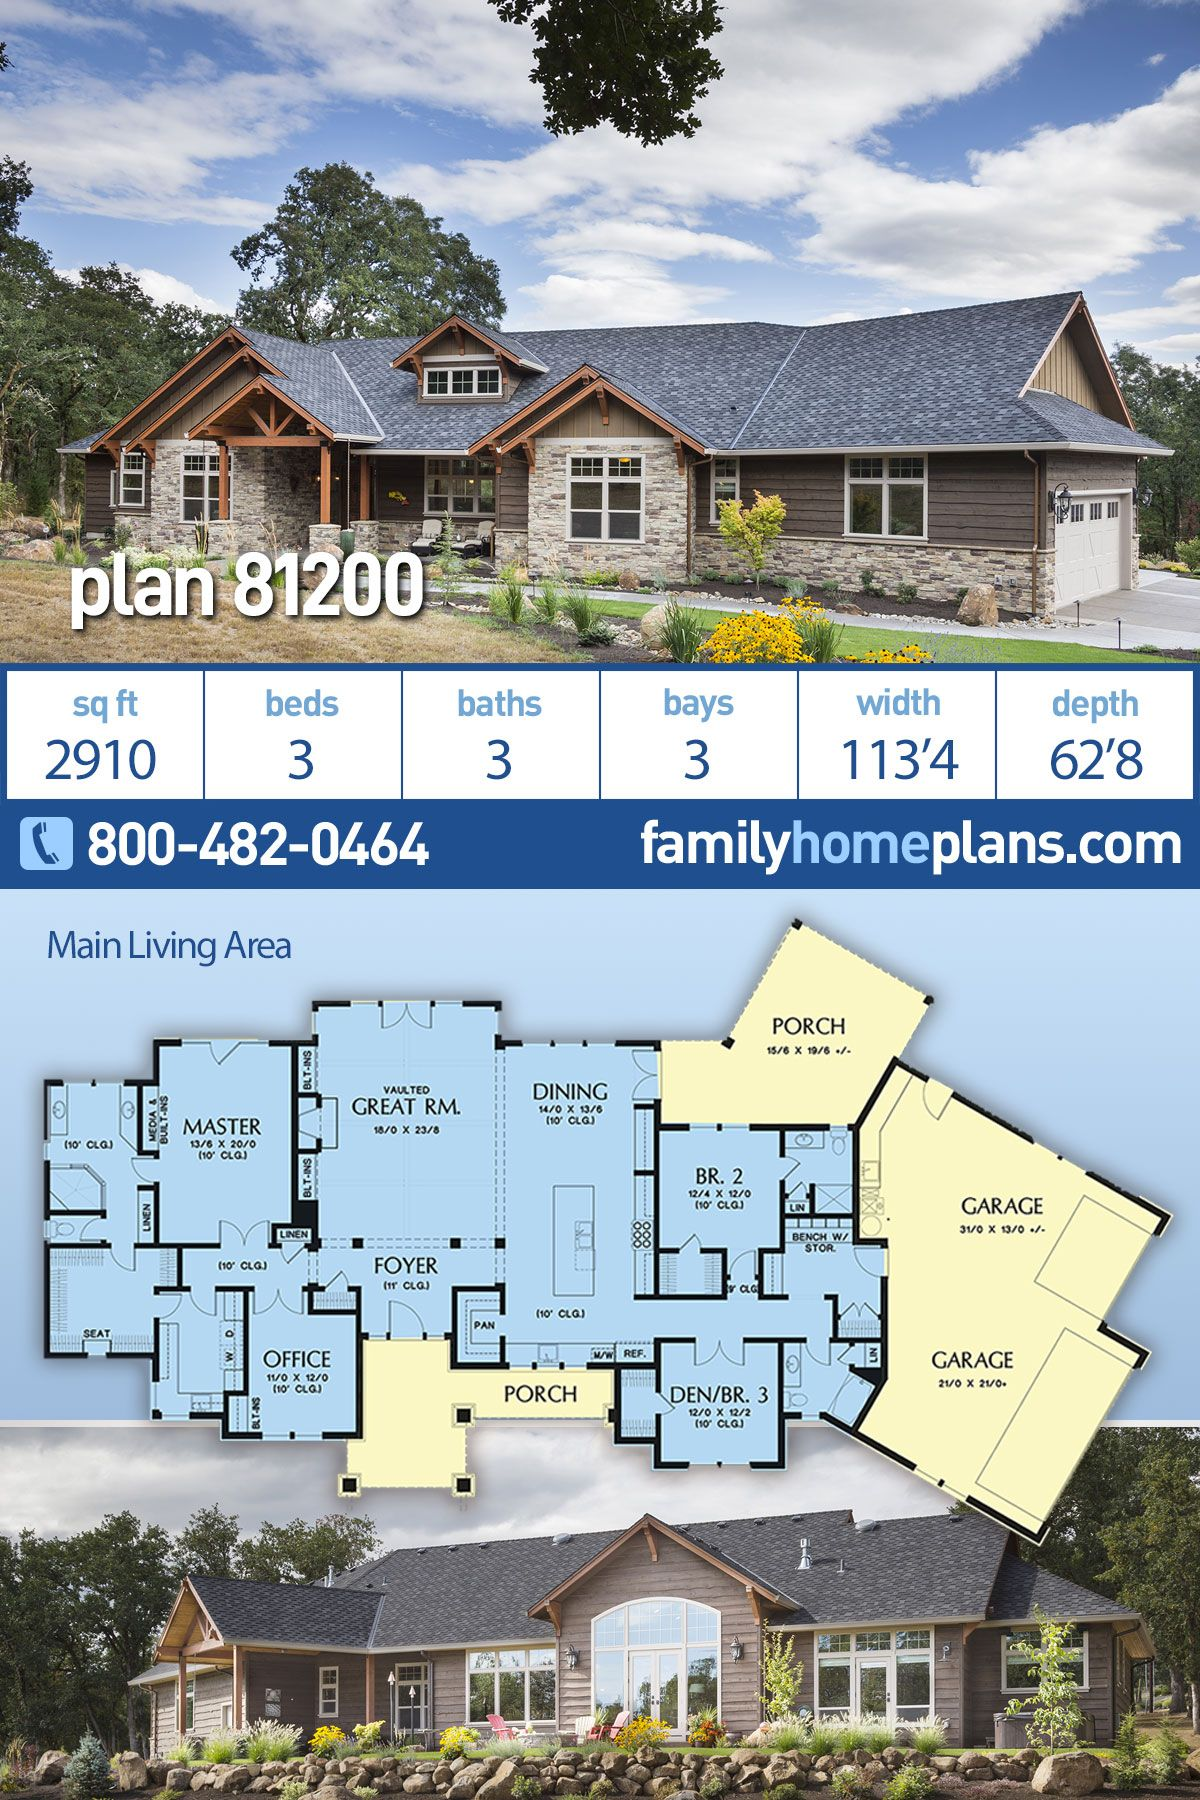 Ranch Style House Plan 81200 With 3 Bed 3 Bath 3 Car Garage In